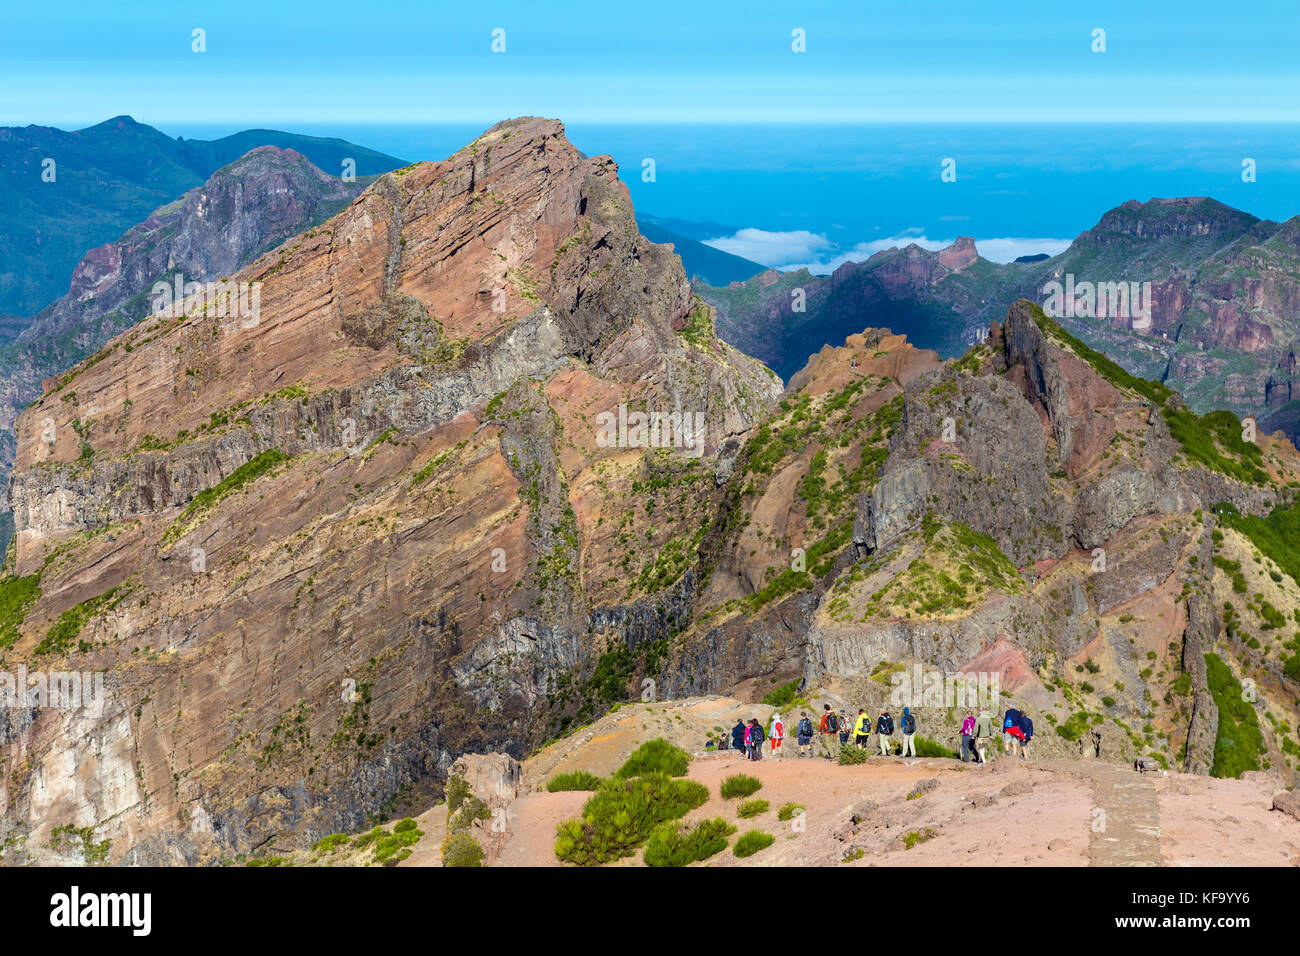 Group of hikers taking off from Pico do Ariero to climb the summit of Pico Ruivo in Madeira, Portugal - Stock Image